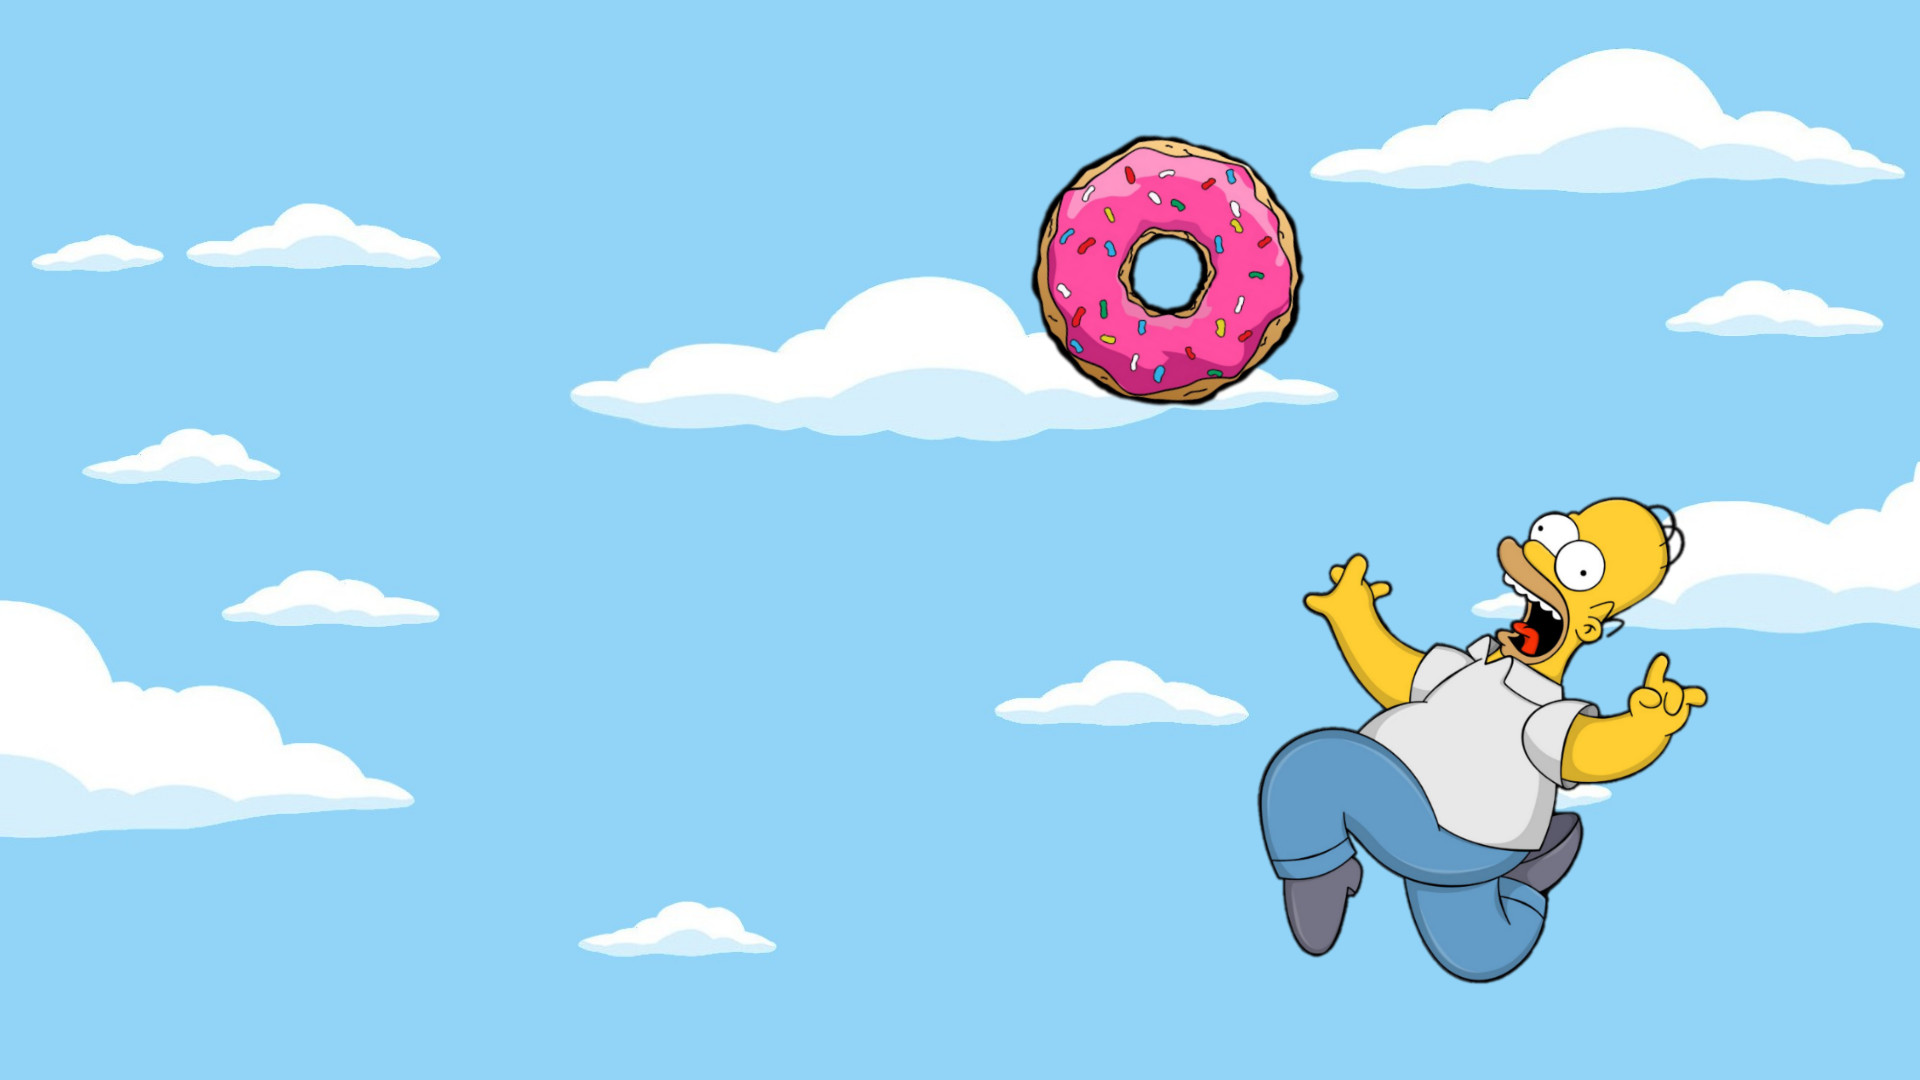 Funny Simpsons Wallpapers   Amazing wallpapers and